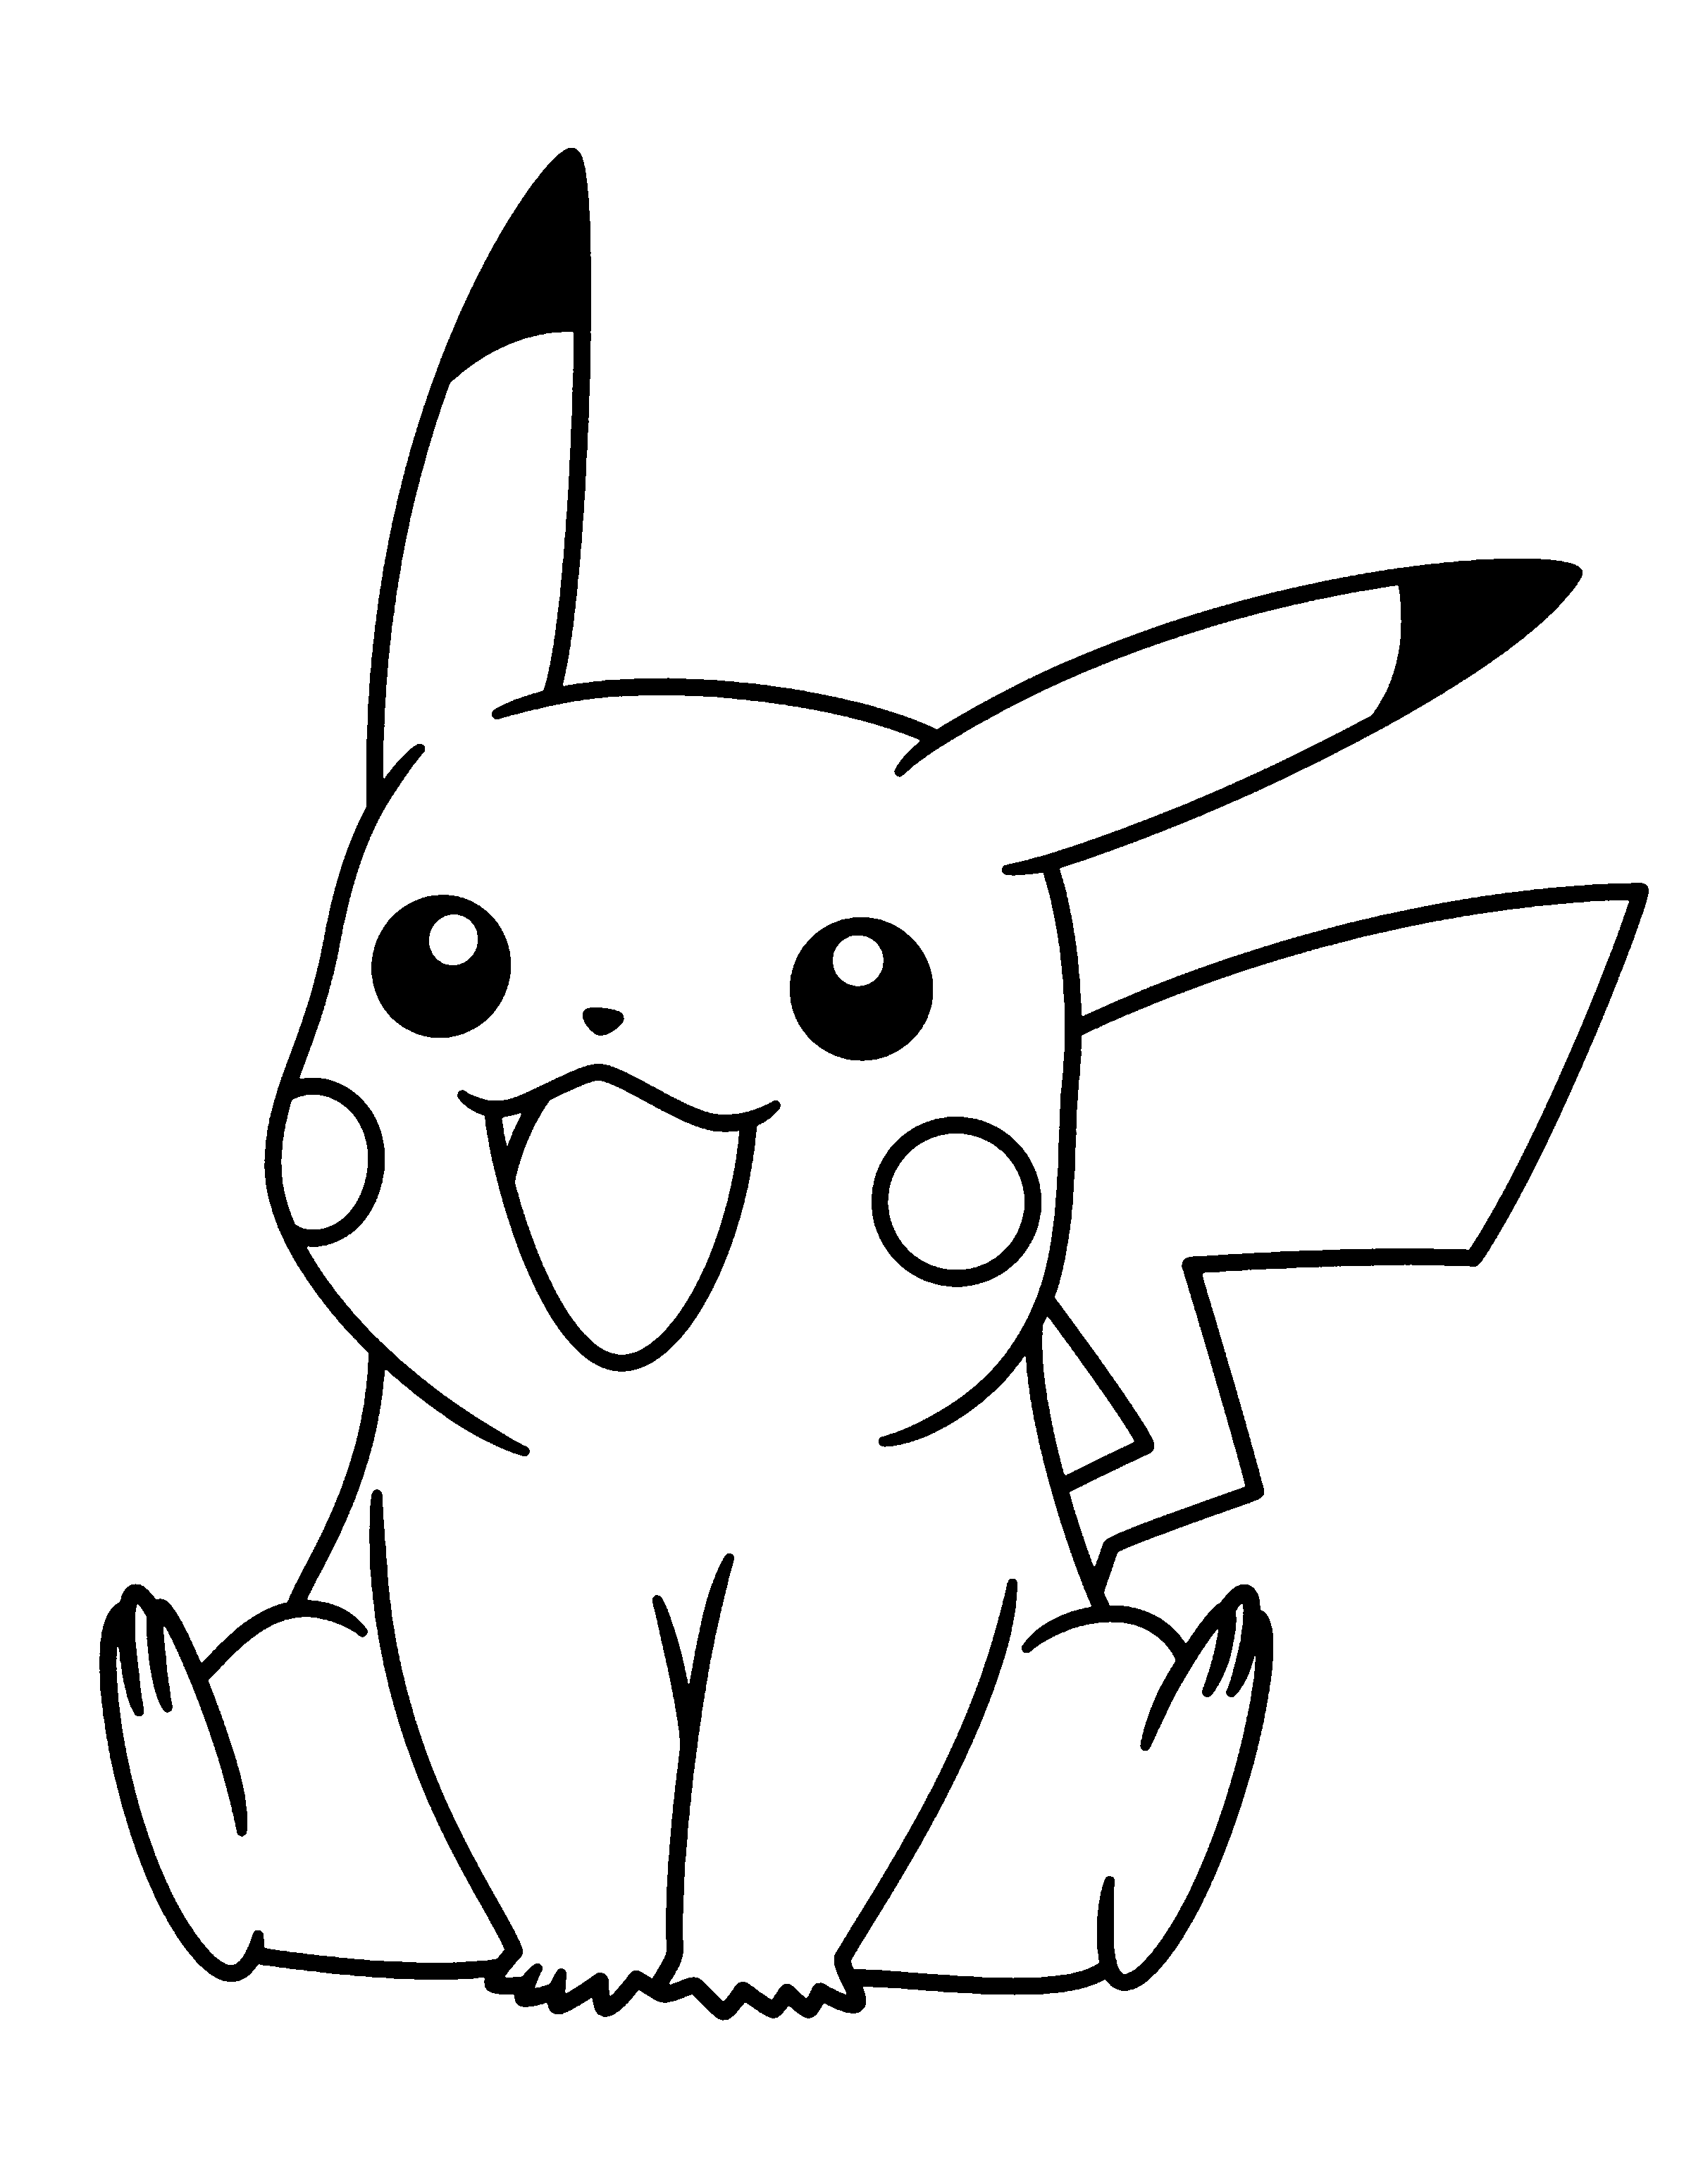 printable coloring pokemon cards pokemon coloring pages join your favorite pokemon on an cards printable coloring pokemon